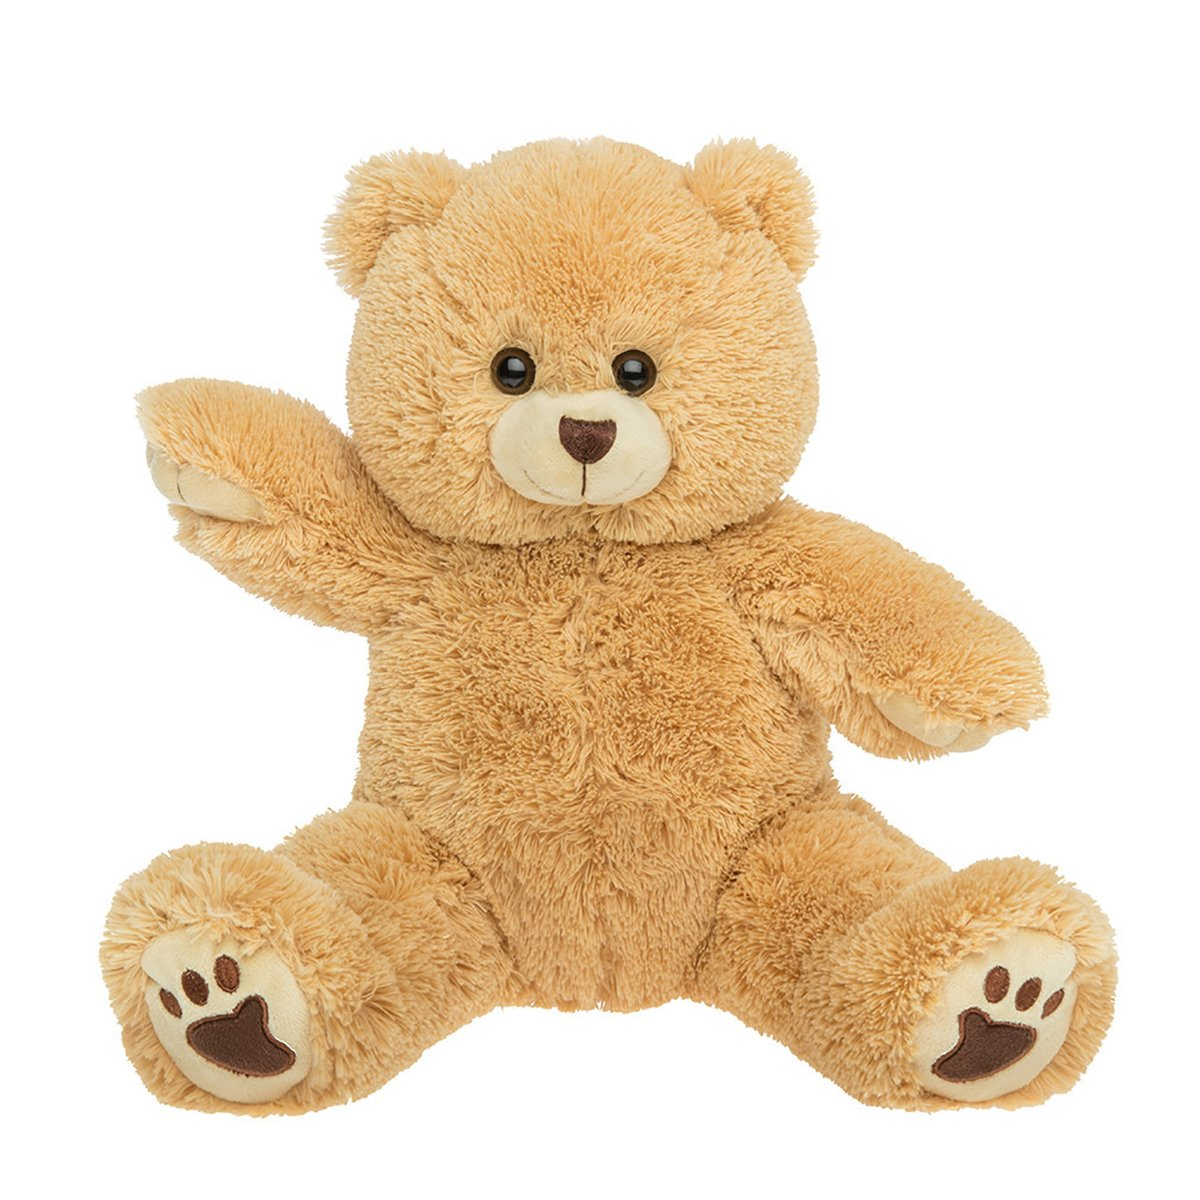 Amazon personal recordable plush 15 talking teddy bear toys amazon personal recordable plush 15 talking teddy bear toys games voltagebd Choice Image